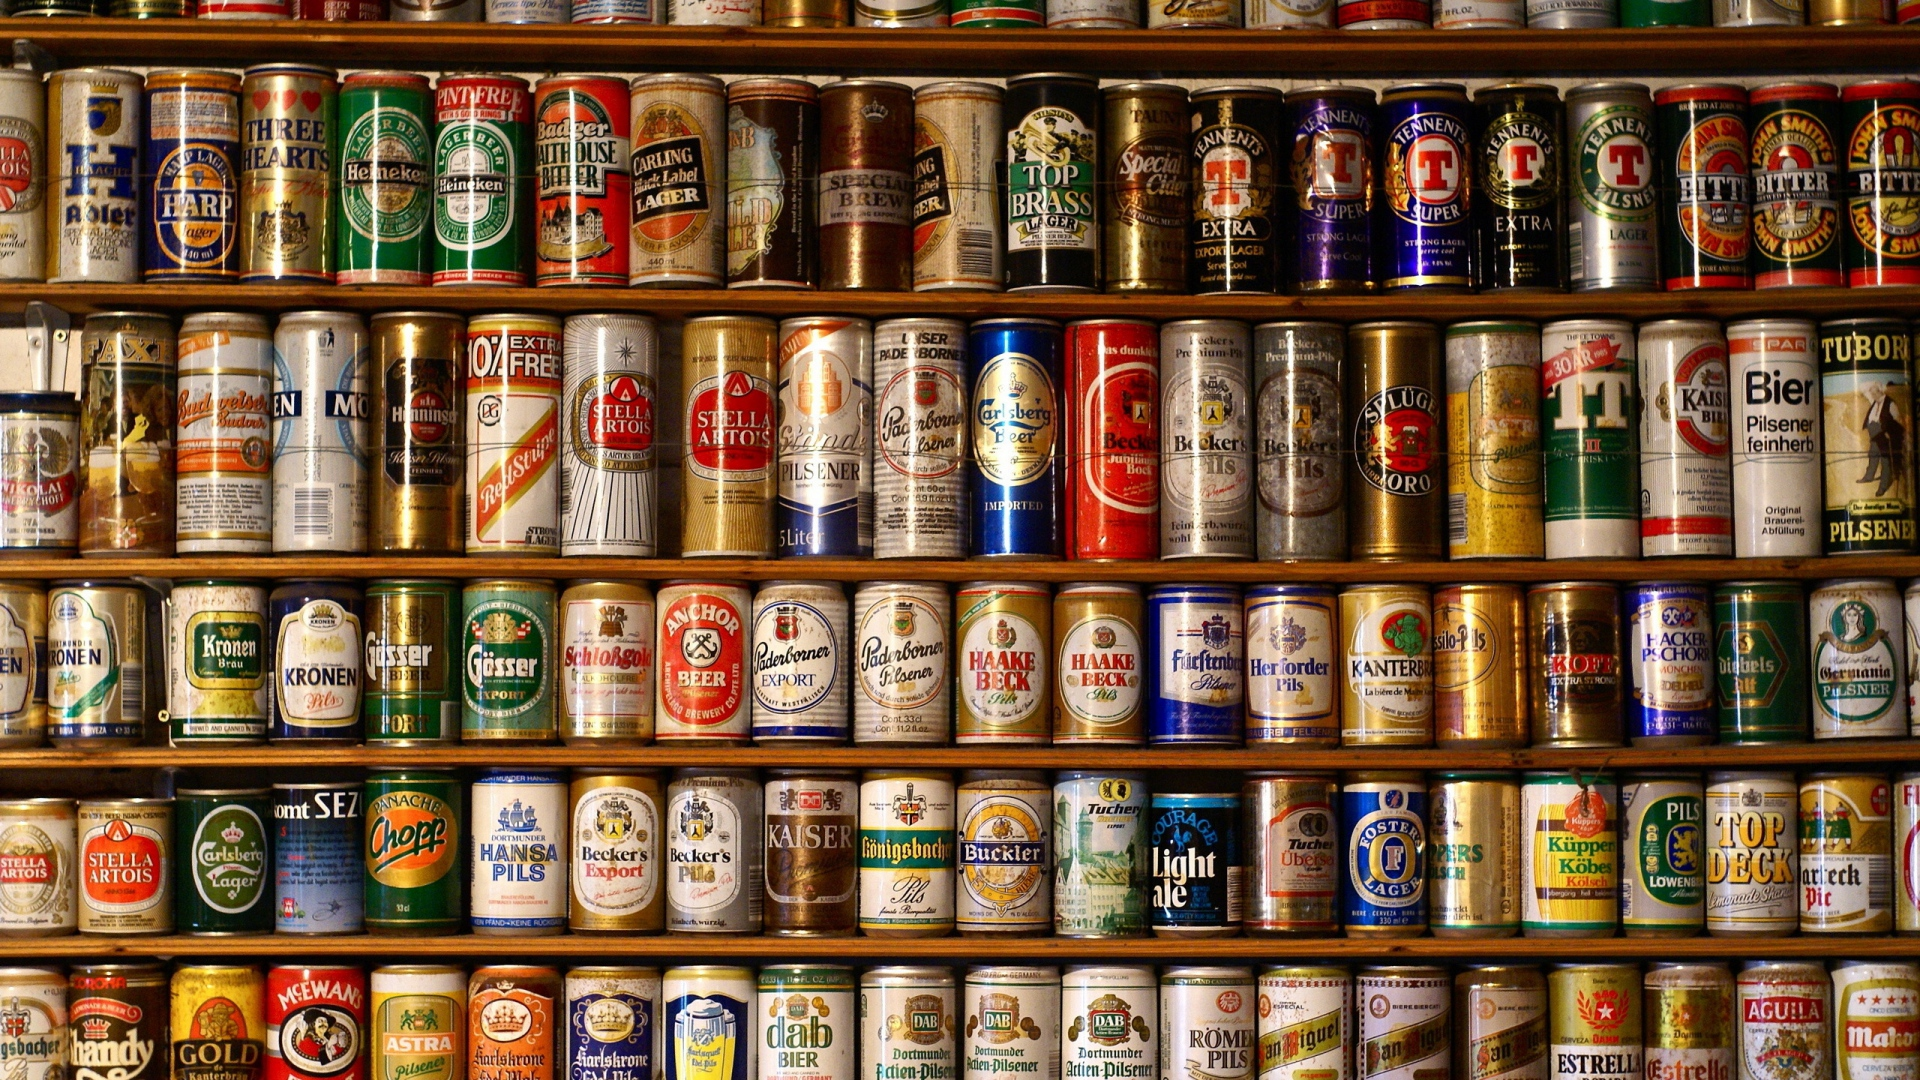 Cool-display-of-collected-beer-cans-One-of-my-many-collections-as-a-kid-wallpaper-wp3604290